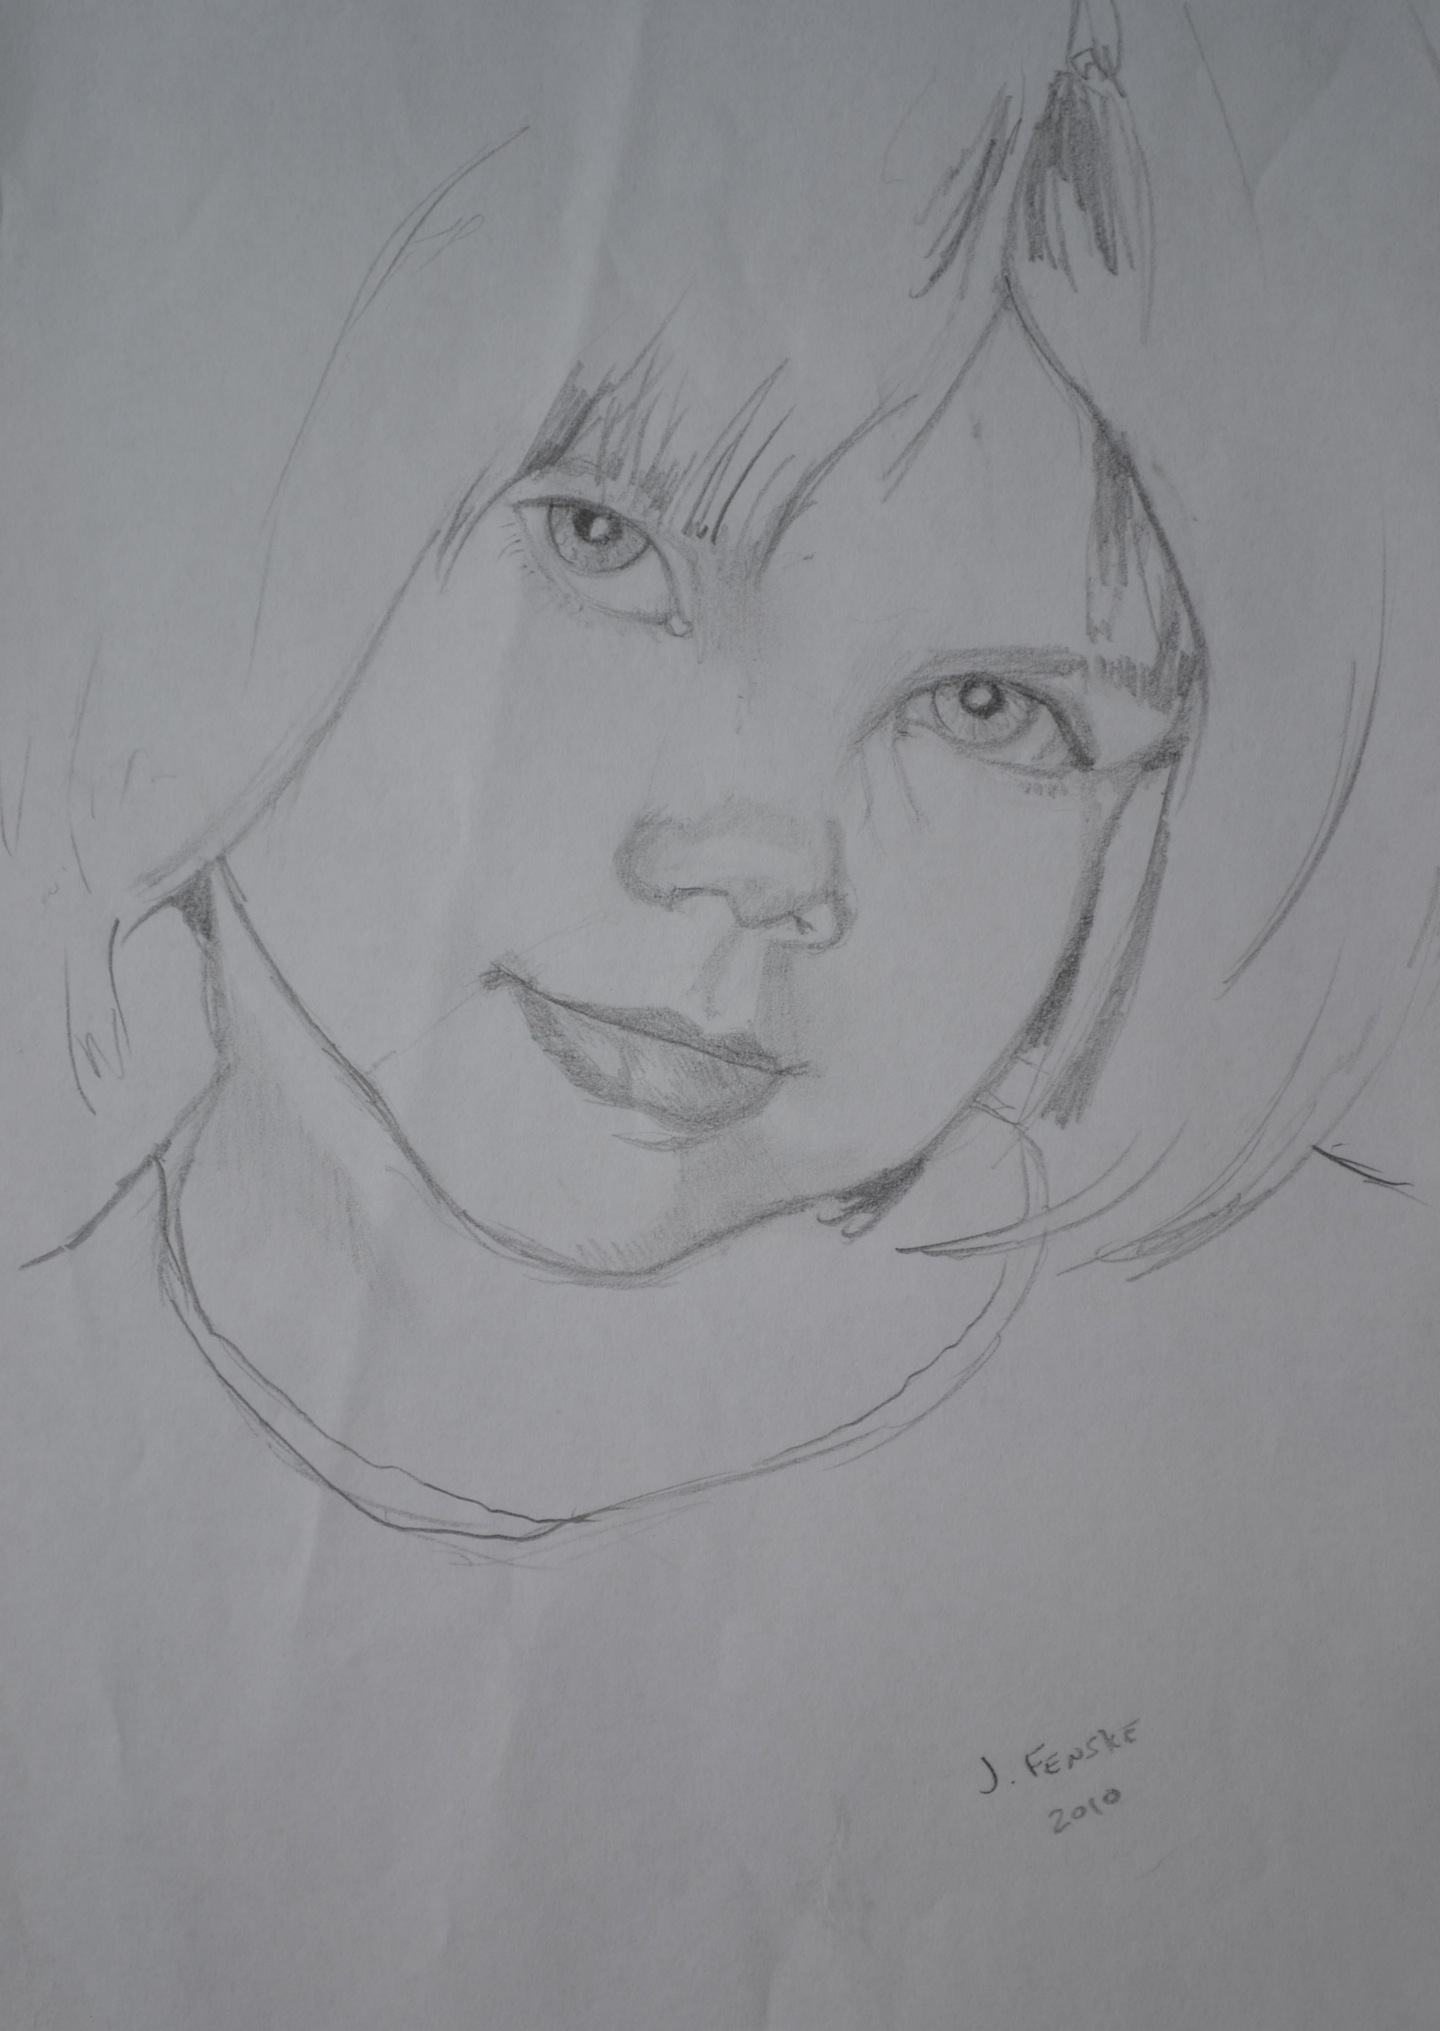 A drawing of a child by Jonathan Fenske